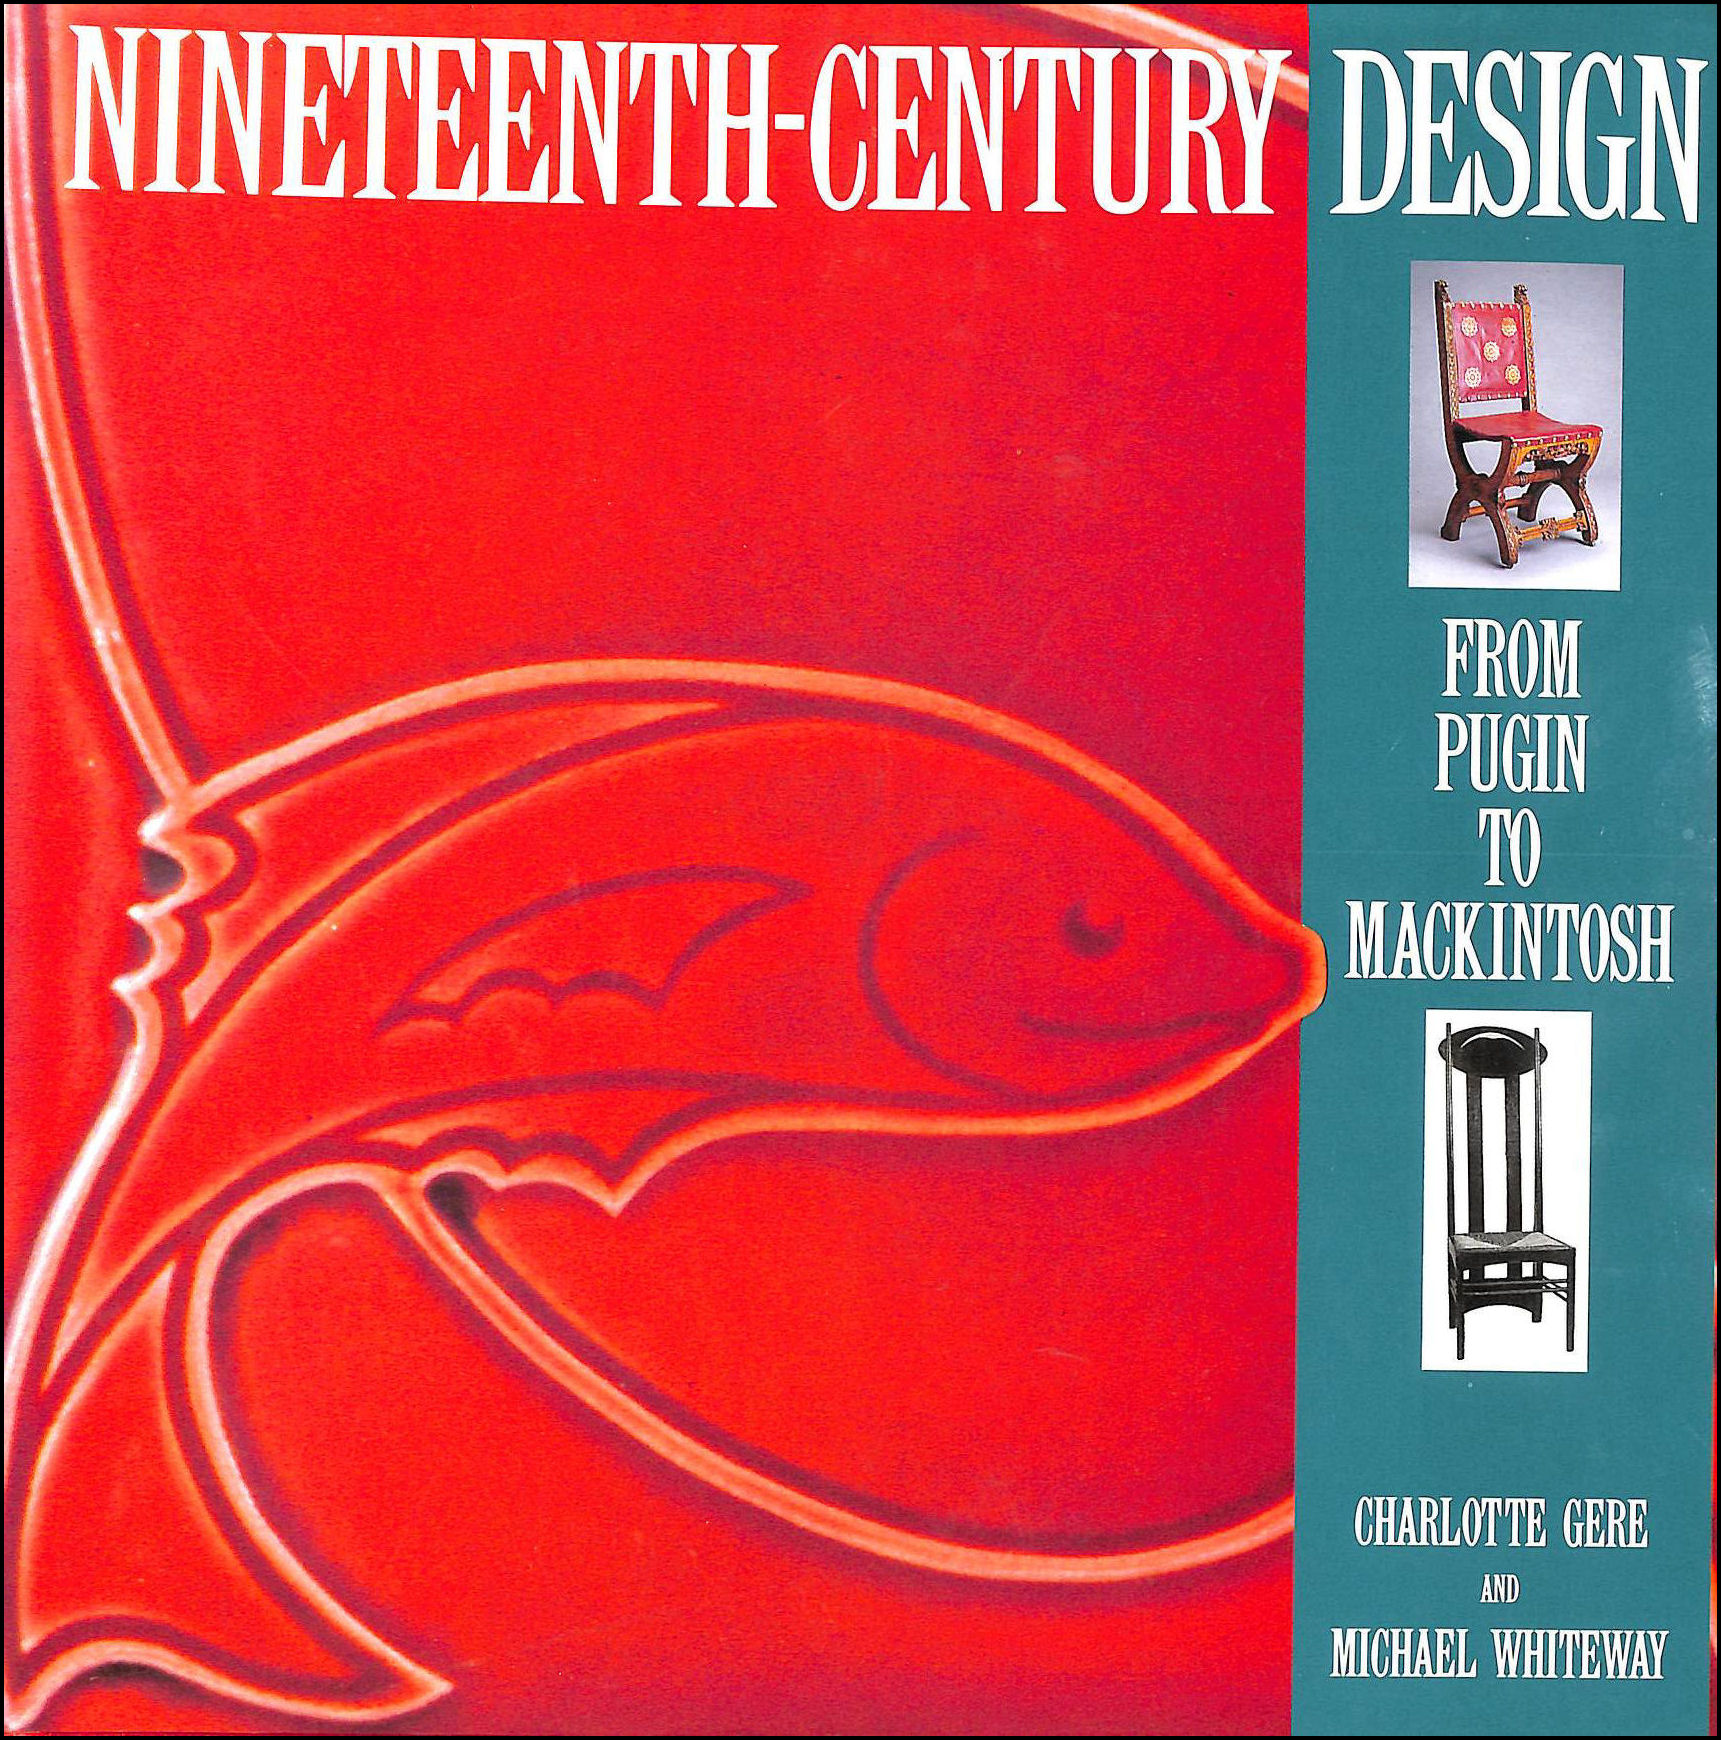 Image for Nineteenth Century Design: From Pugin to Mackintosh